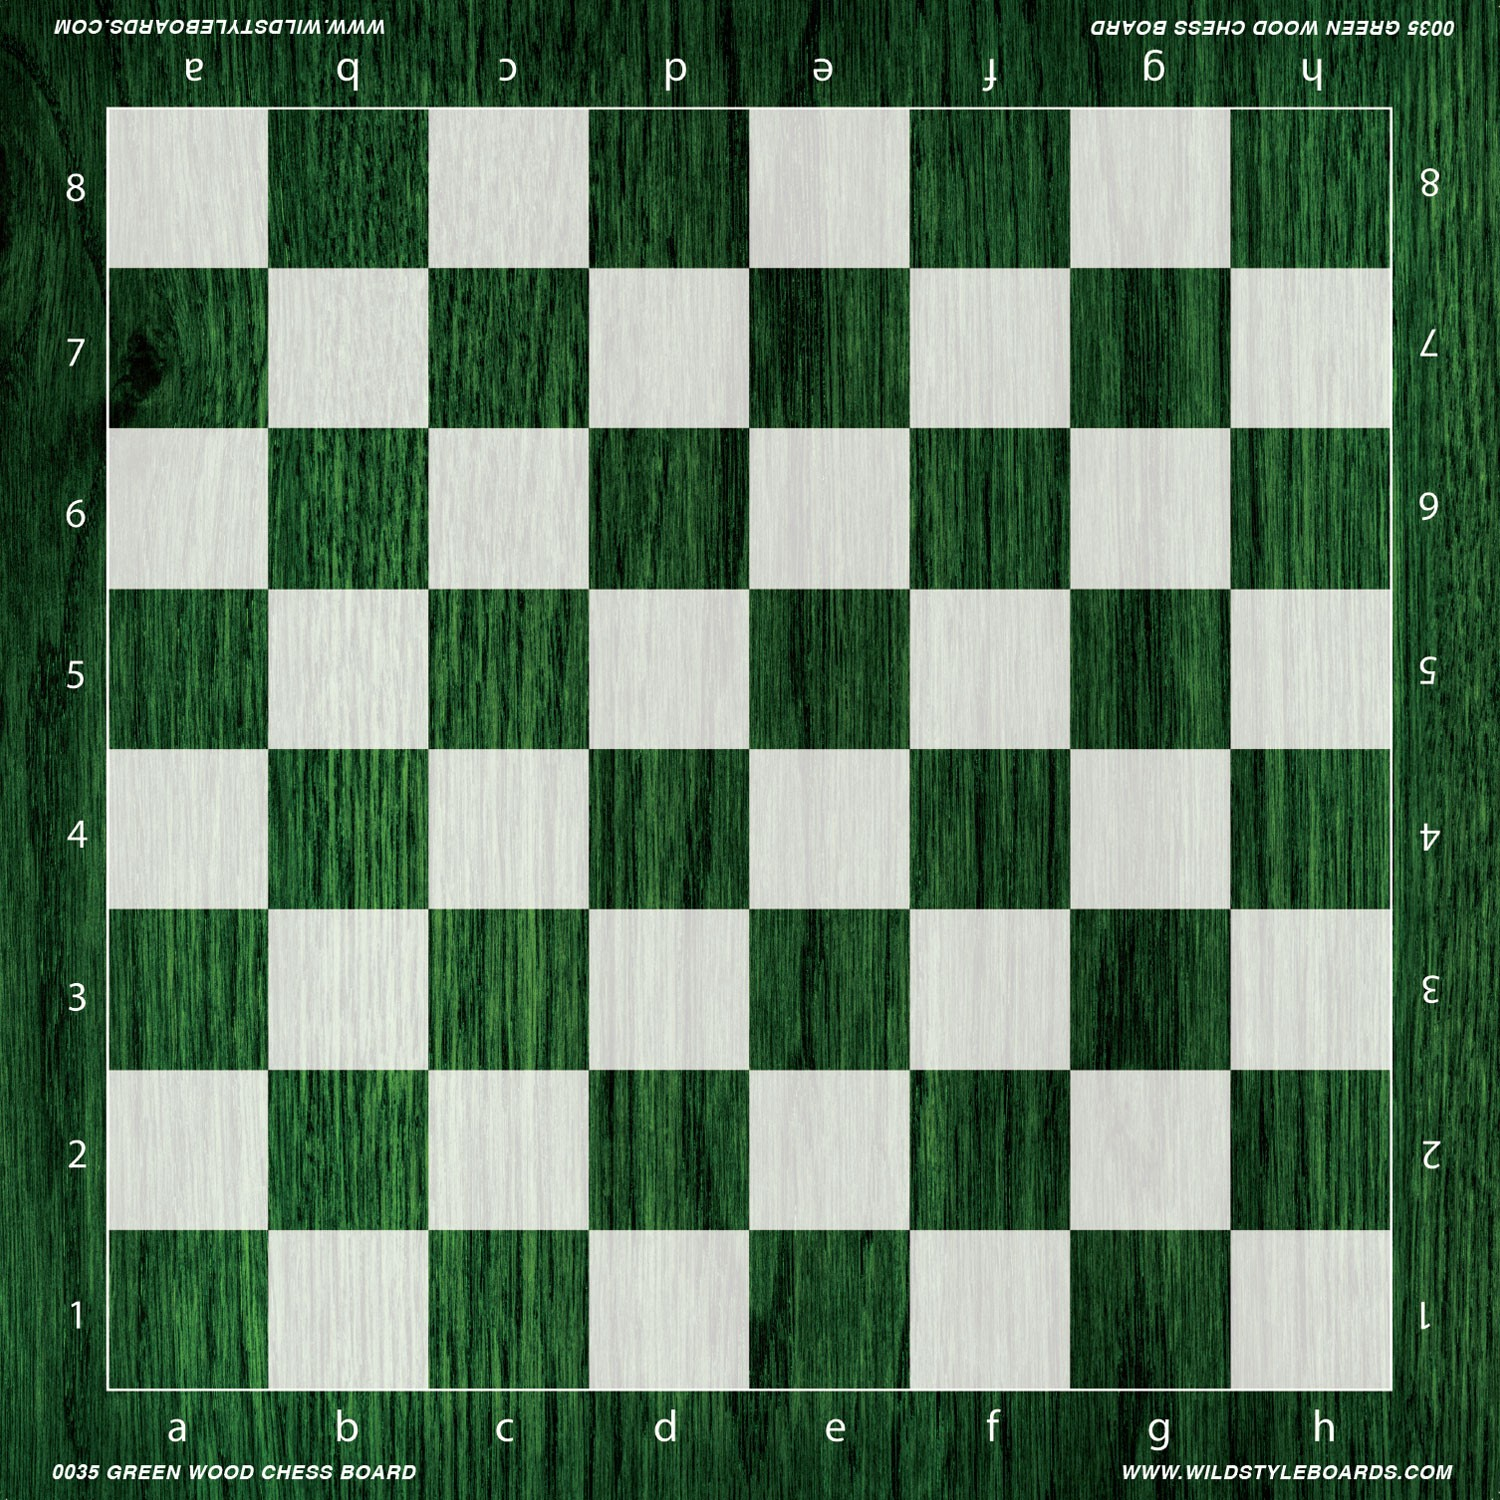 photograph relating to Chess Board Printable referred to as Eco-friendly Picket Chess Board - Total Colour Vinyl Chess Board